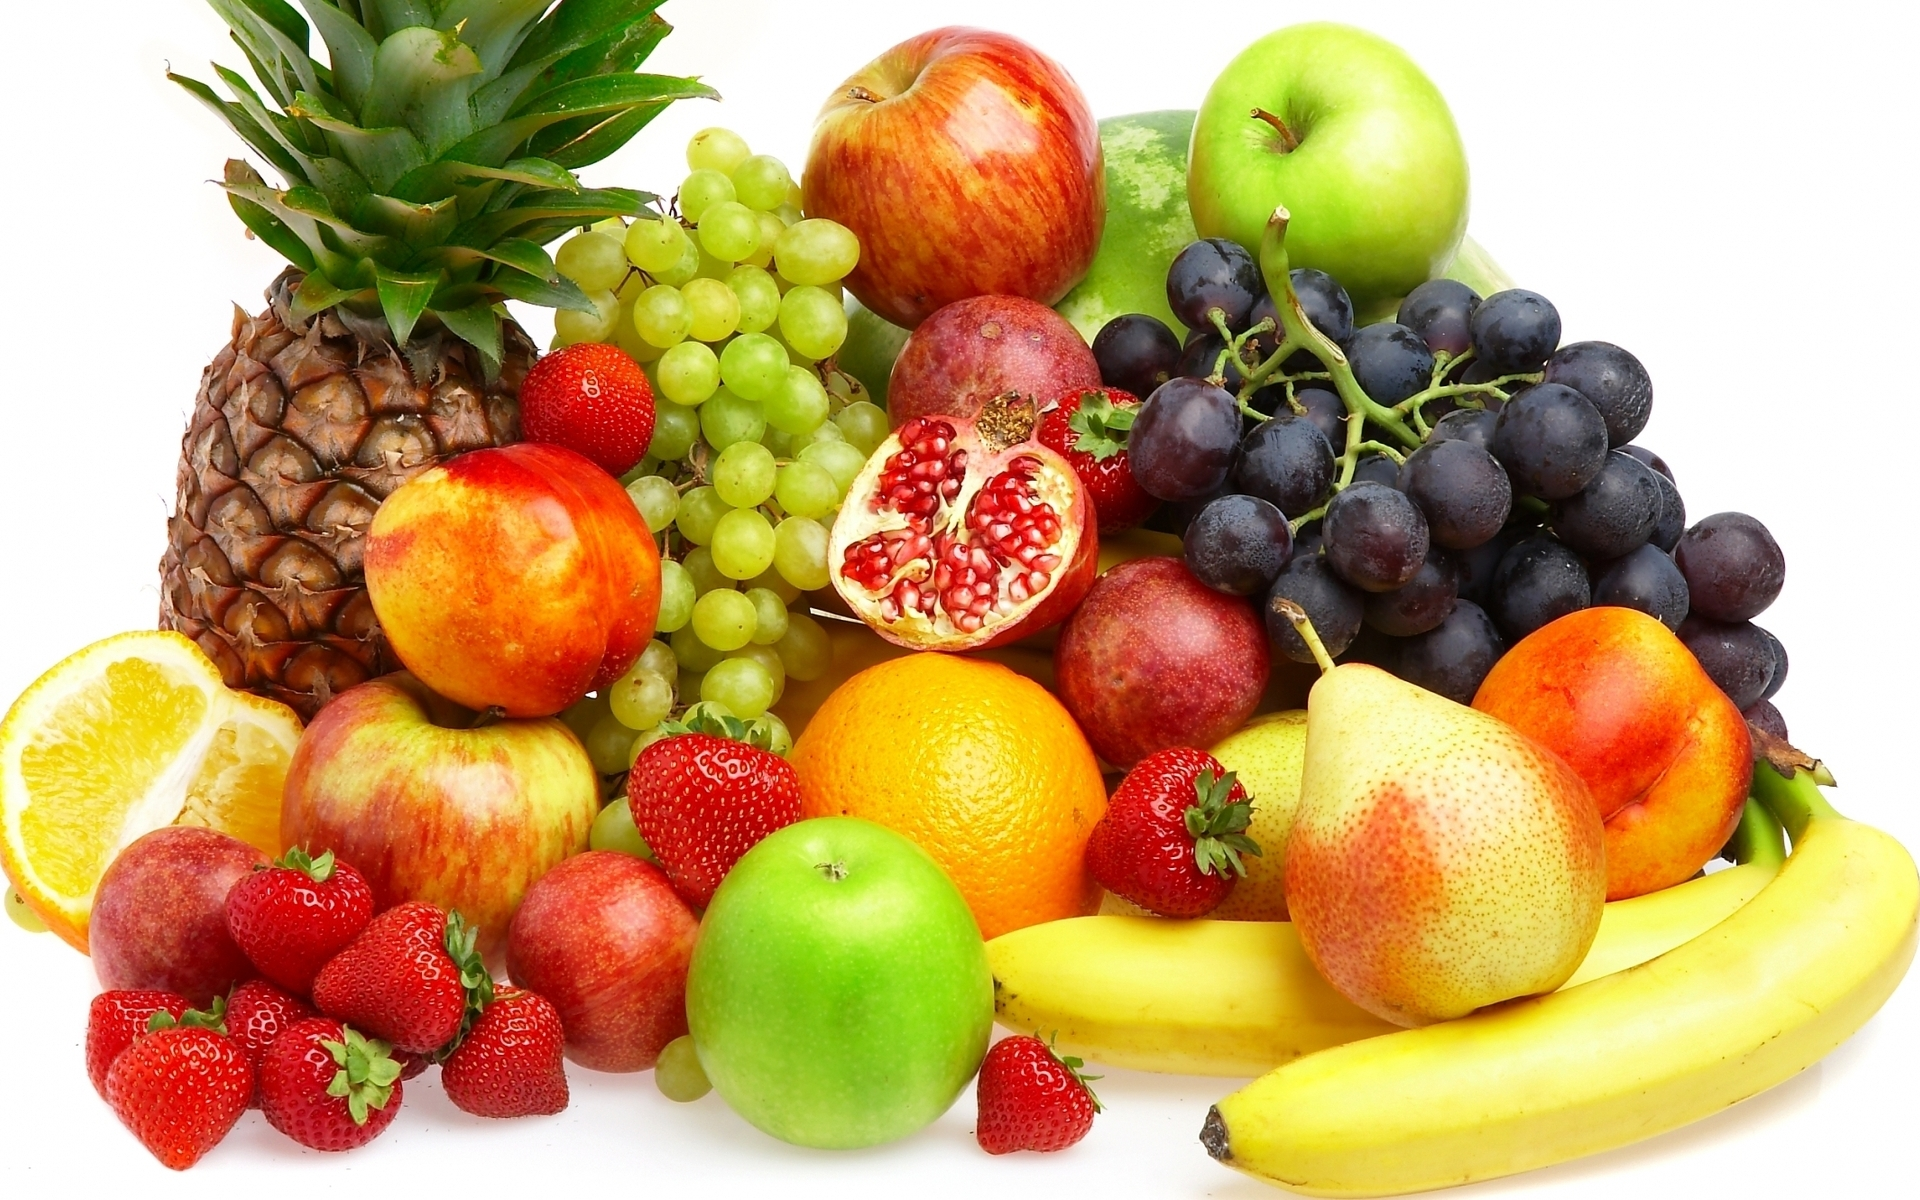 fruits wallpapers - hd desktop backgrounds